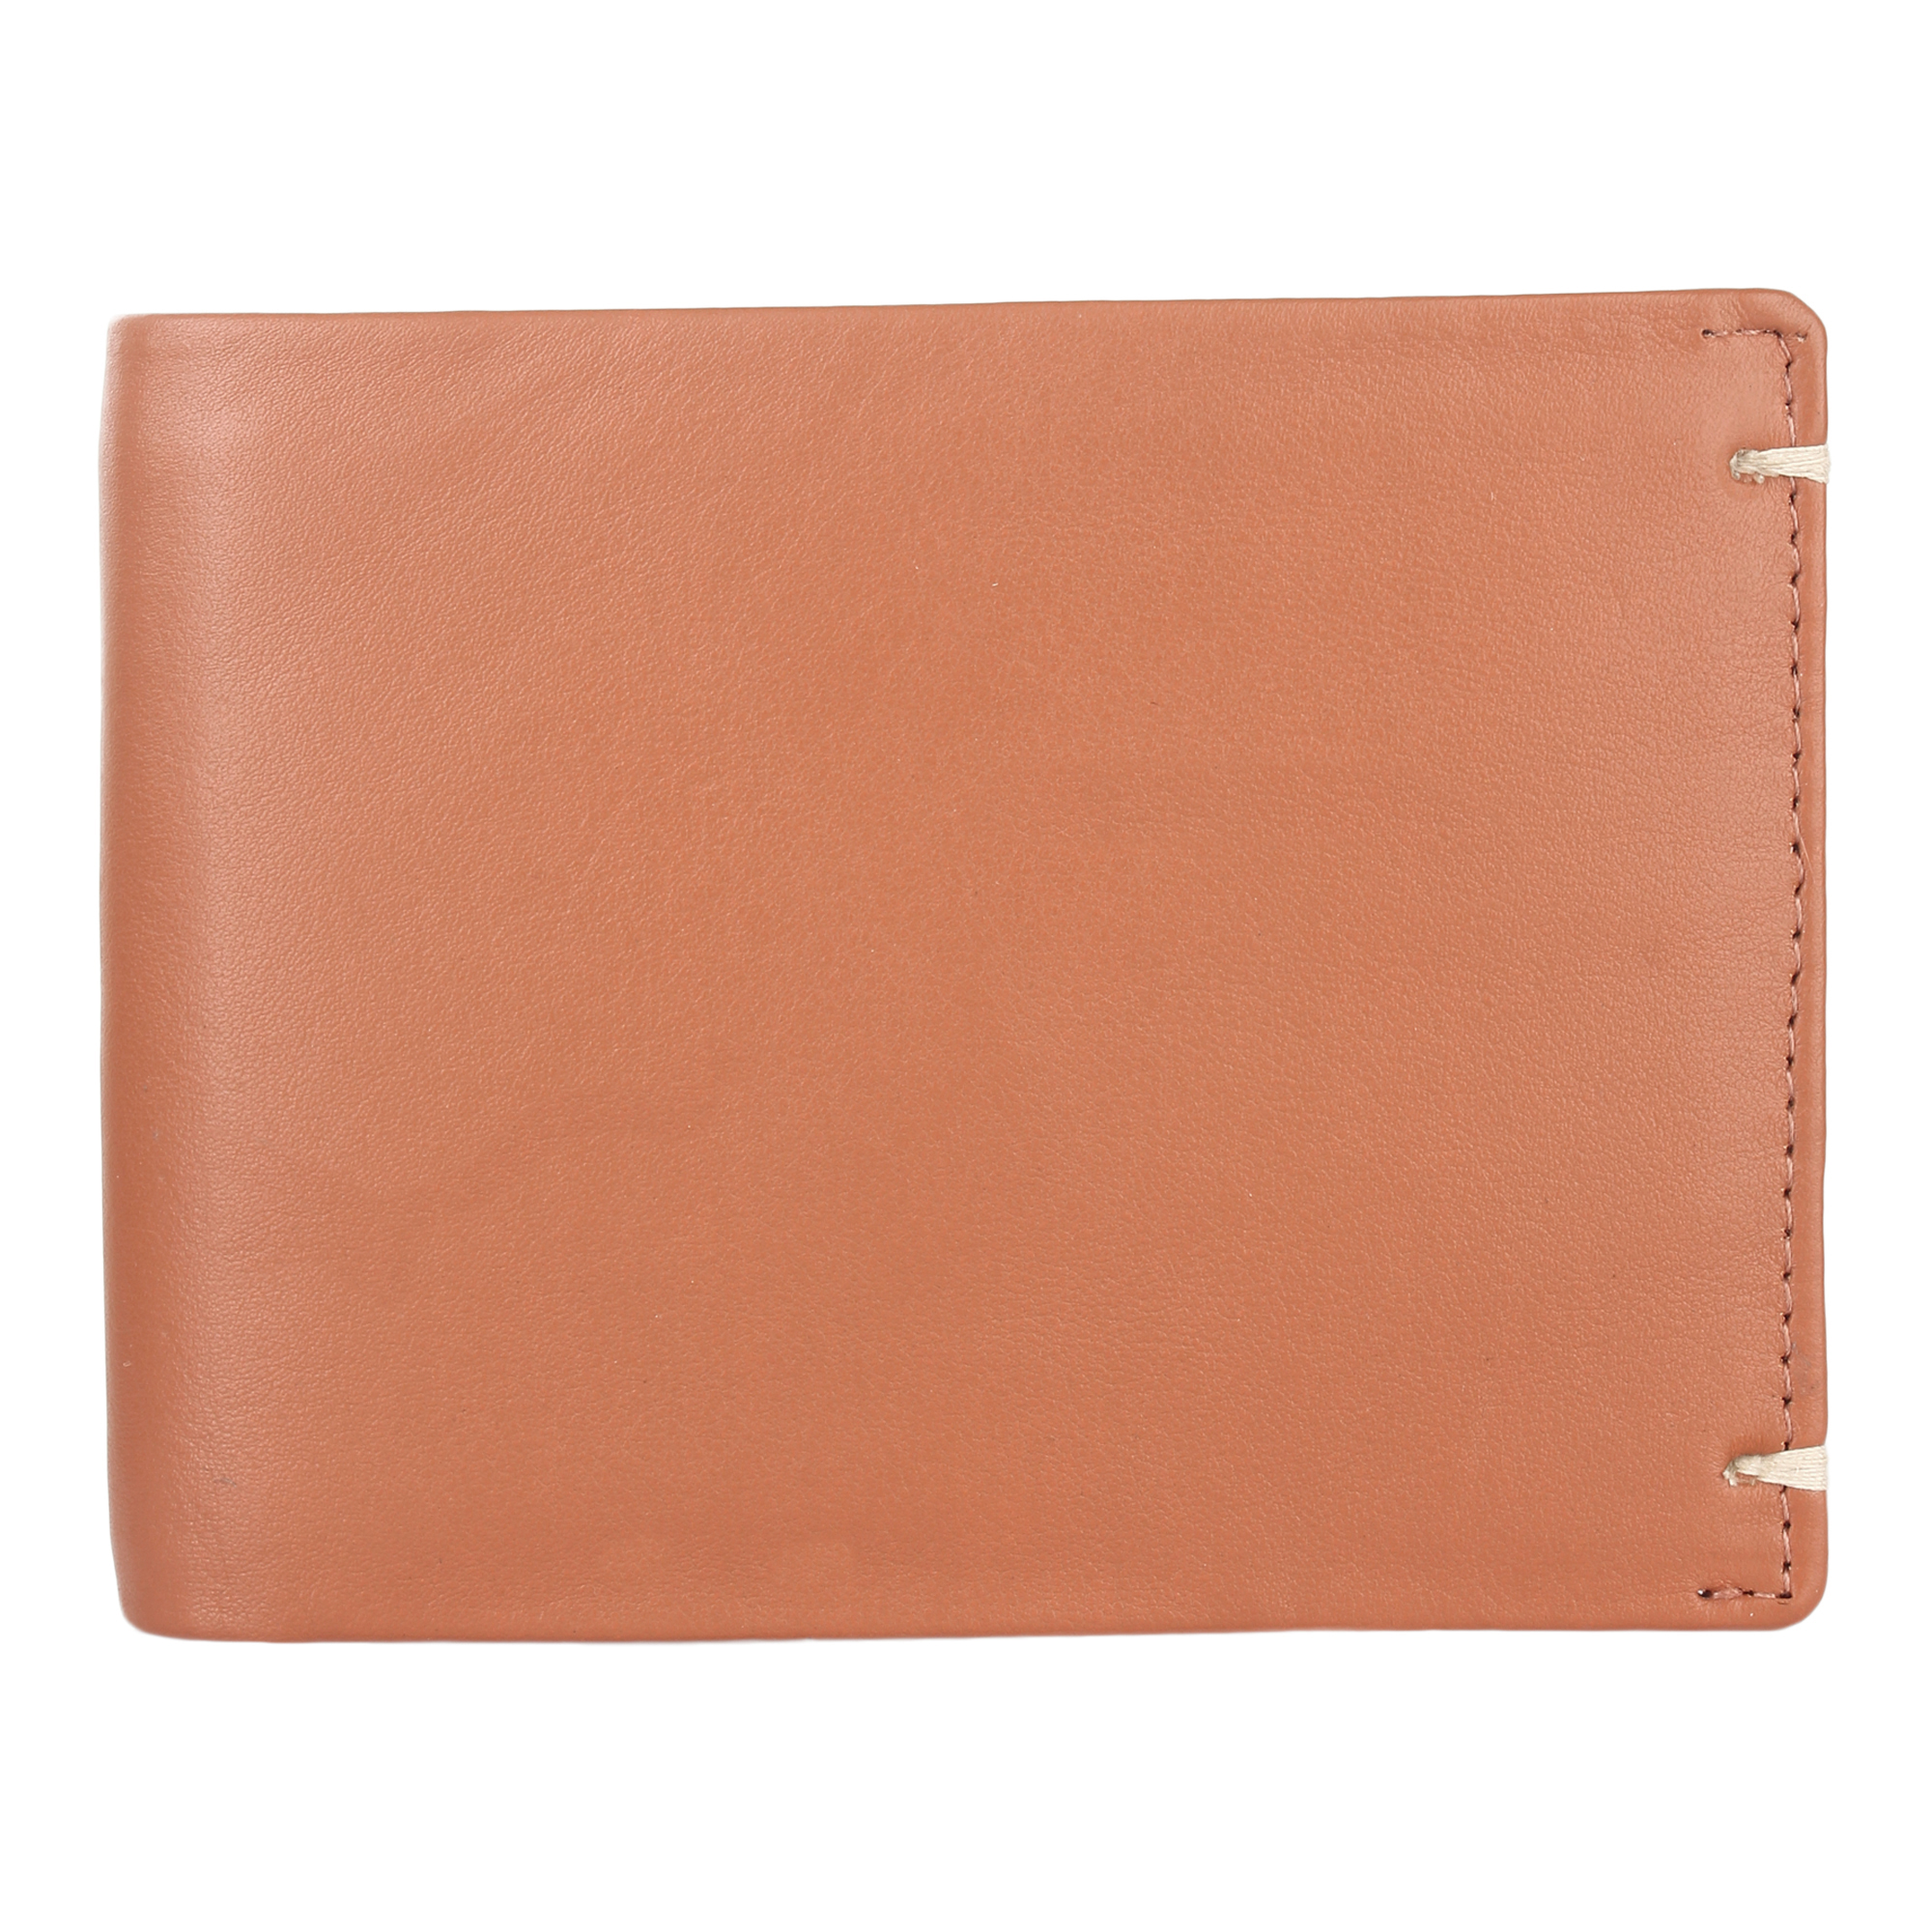 Leather Wallets Manufacturers in Marseille, Leather Wallets Suppliers in Marseille, Leather Wallets Wholesalers in Marseille, Leather Wallets Traders in Marseille, custom leather wallet manufacturers in Marseille, Leathe